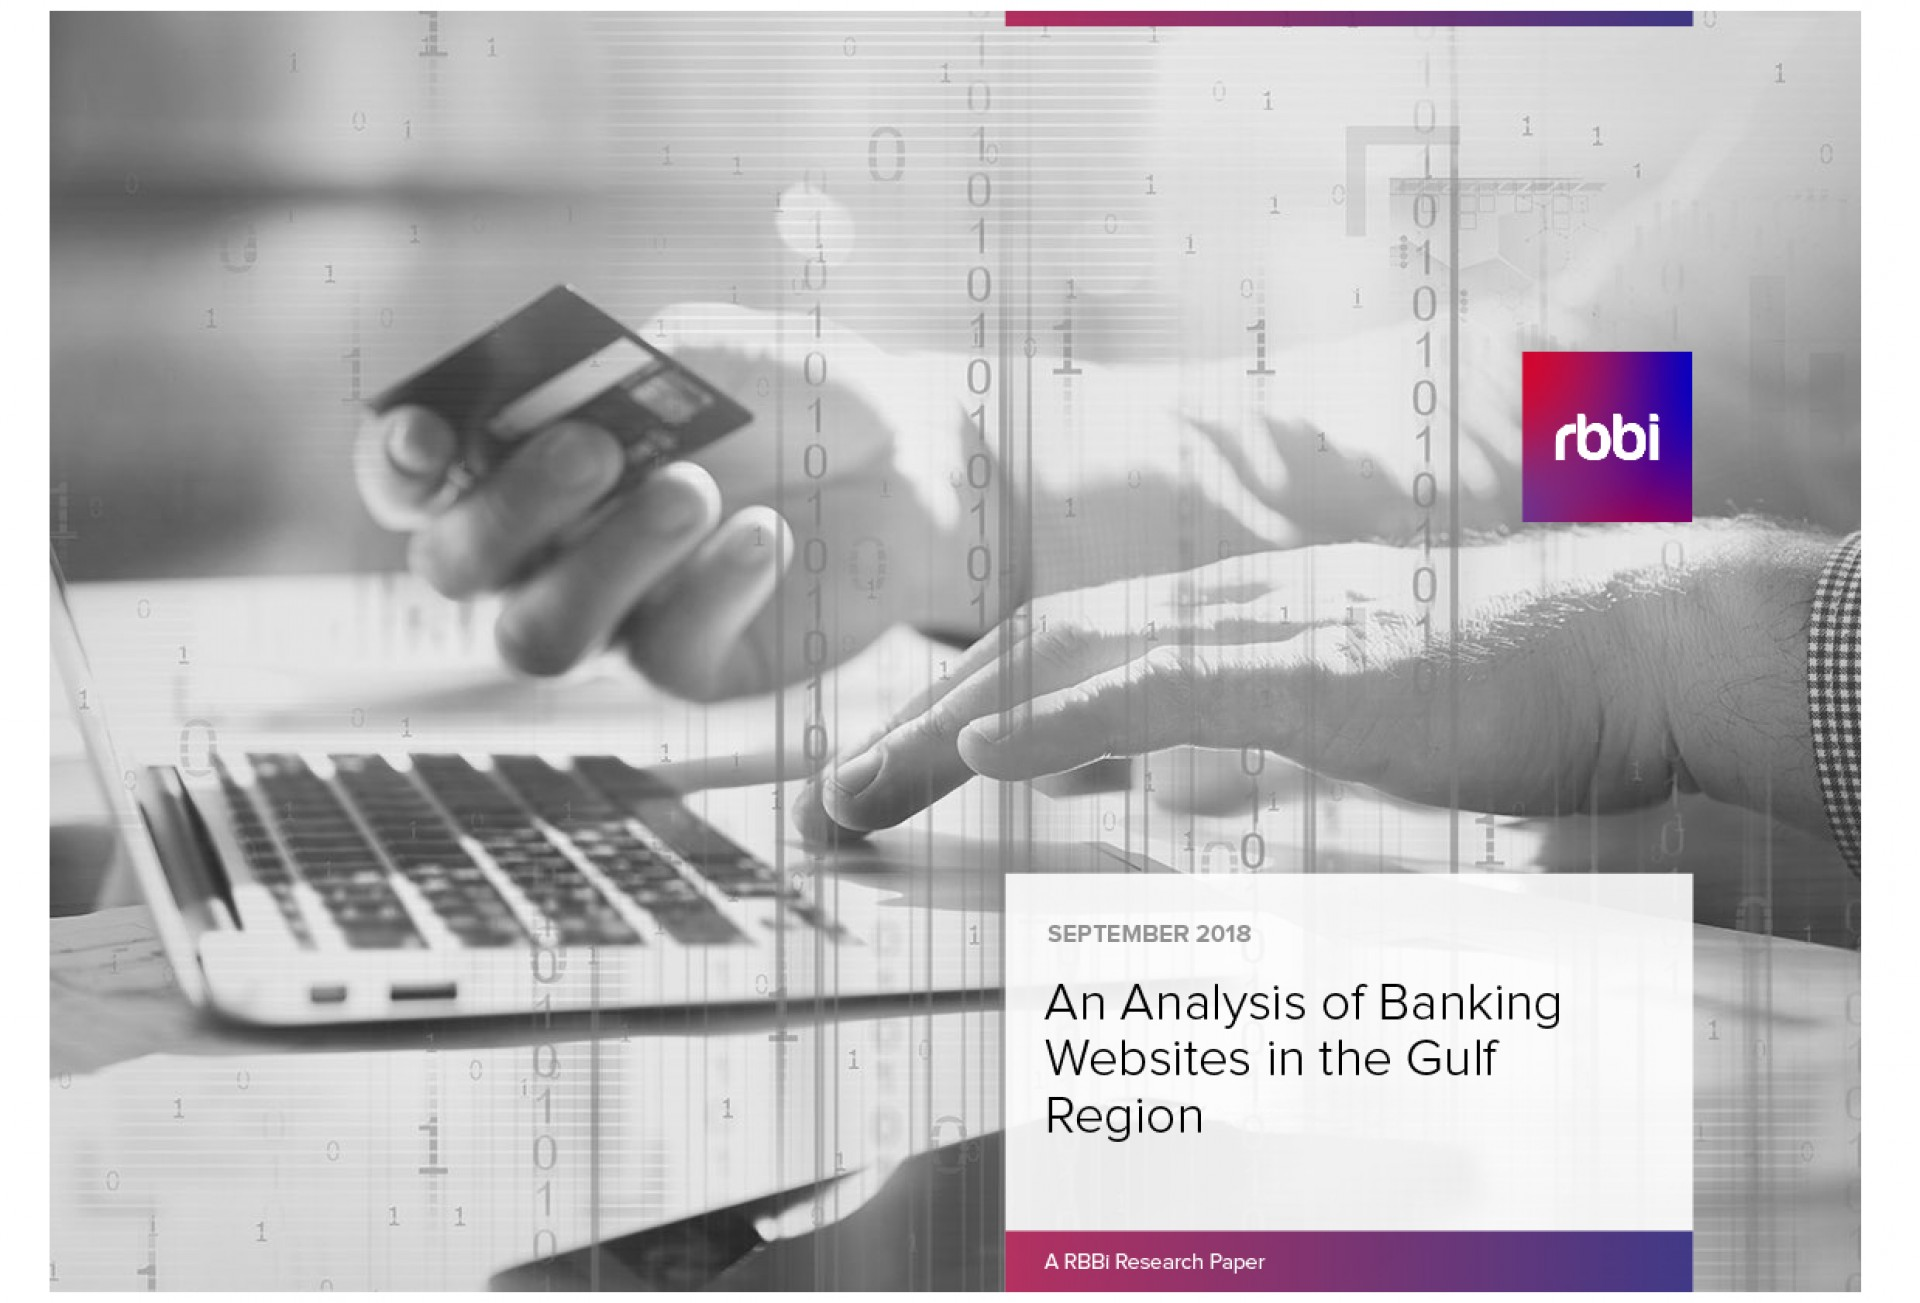 020 Research Paper Rbbi Analysis Of Banking Websites In The Gulf Region 1 Formidable Best Good For Sources Free Papers Download 1920